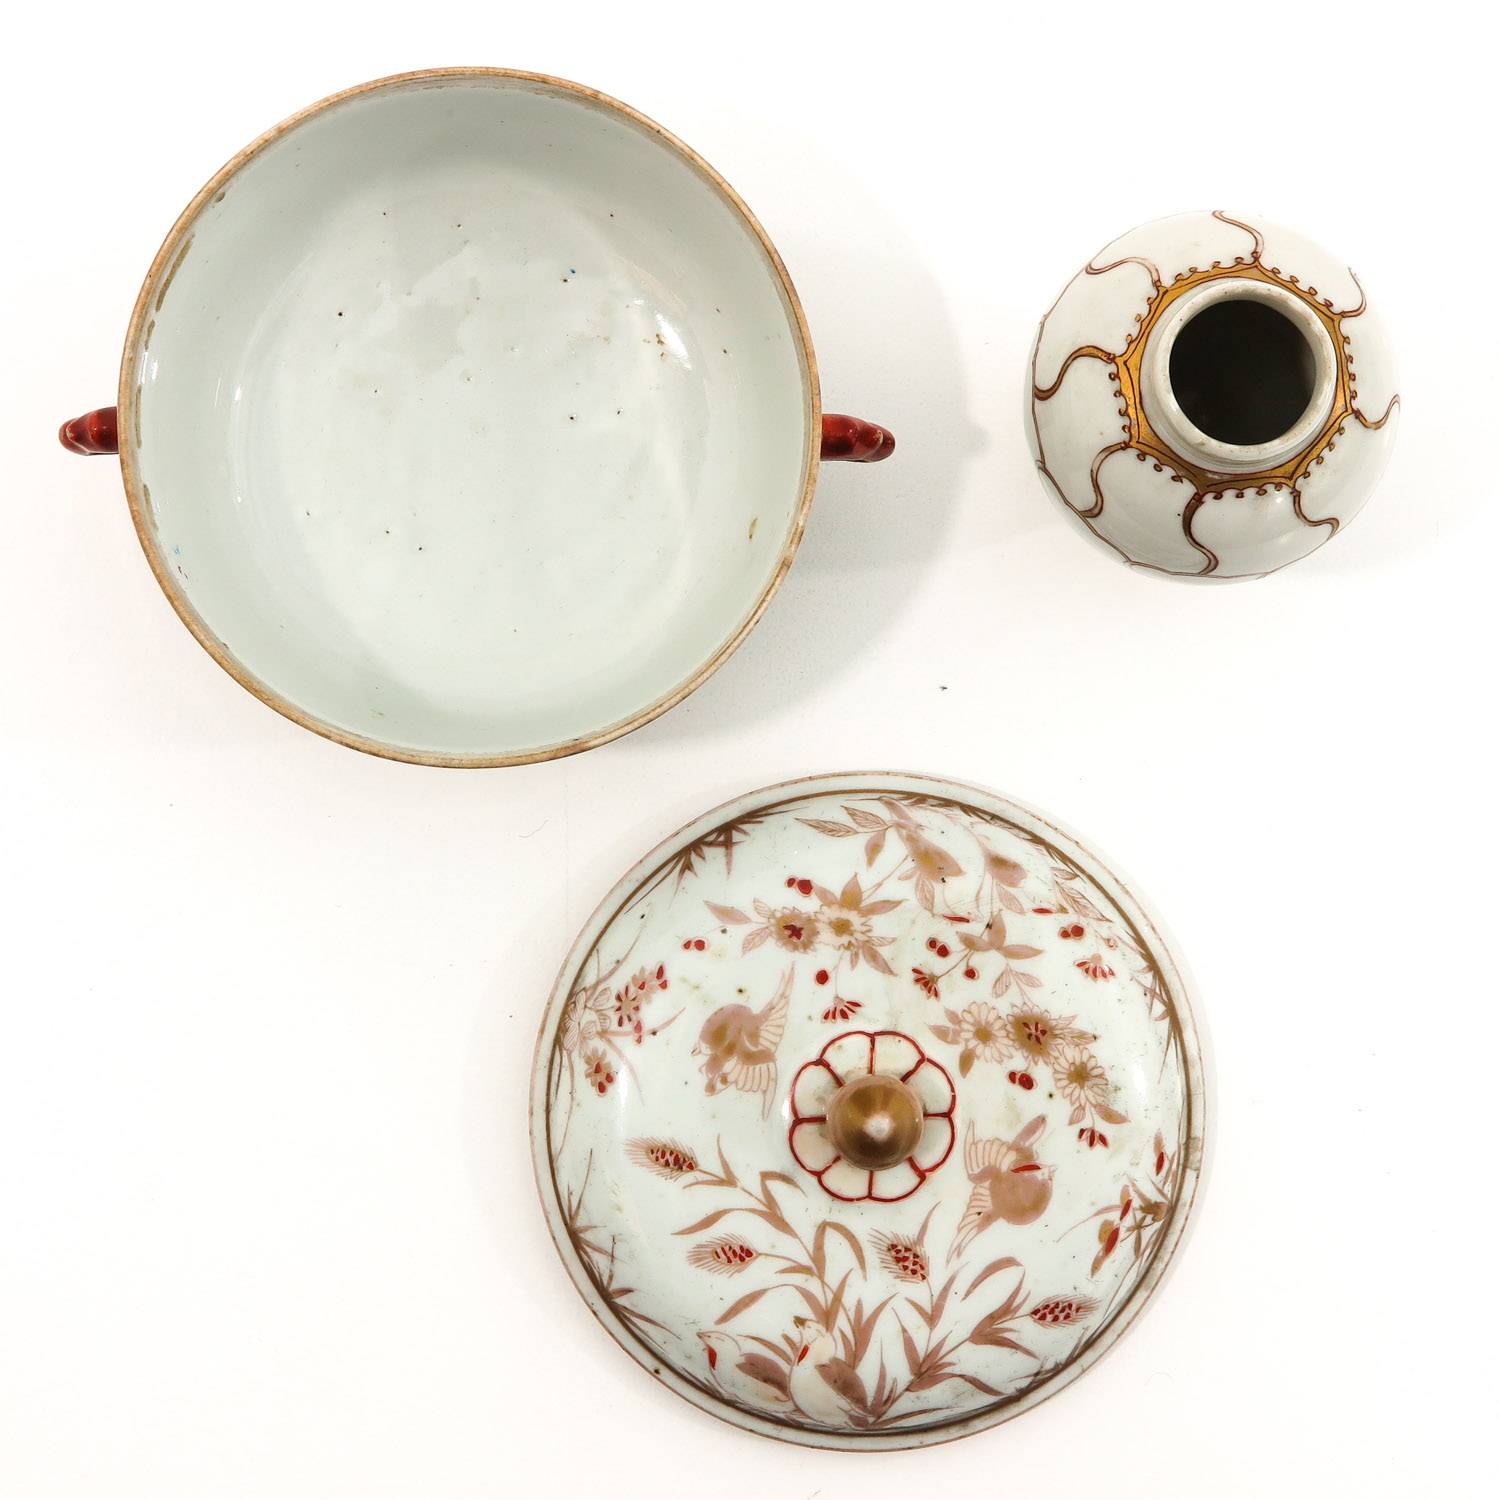 A Tea Box and Covered Dish - Image 5 of 9